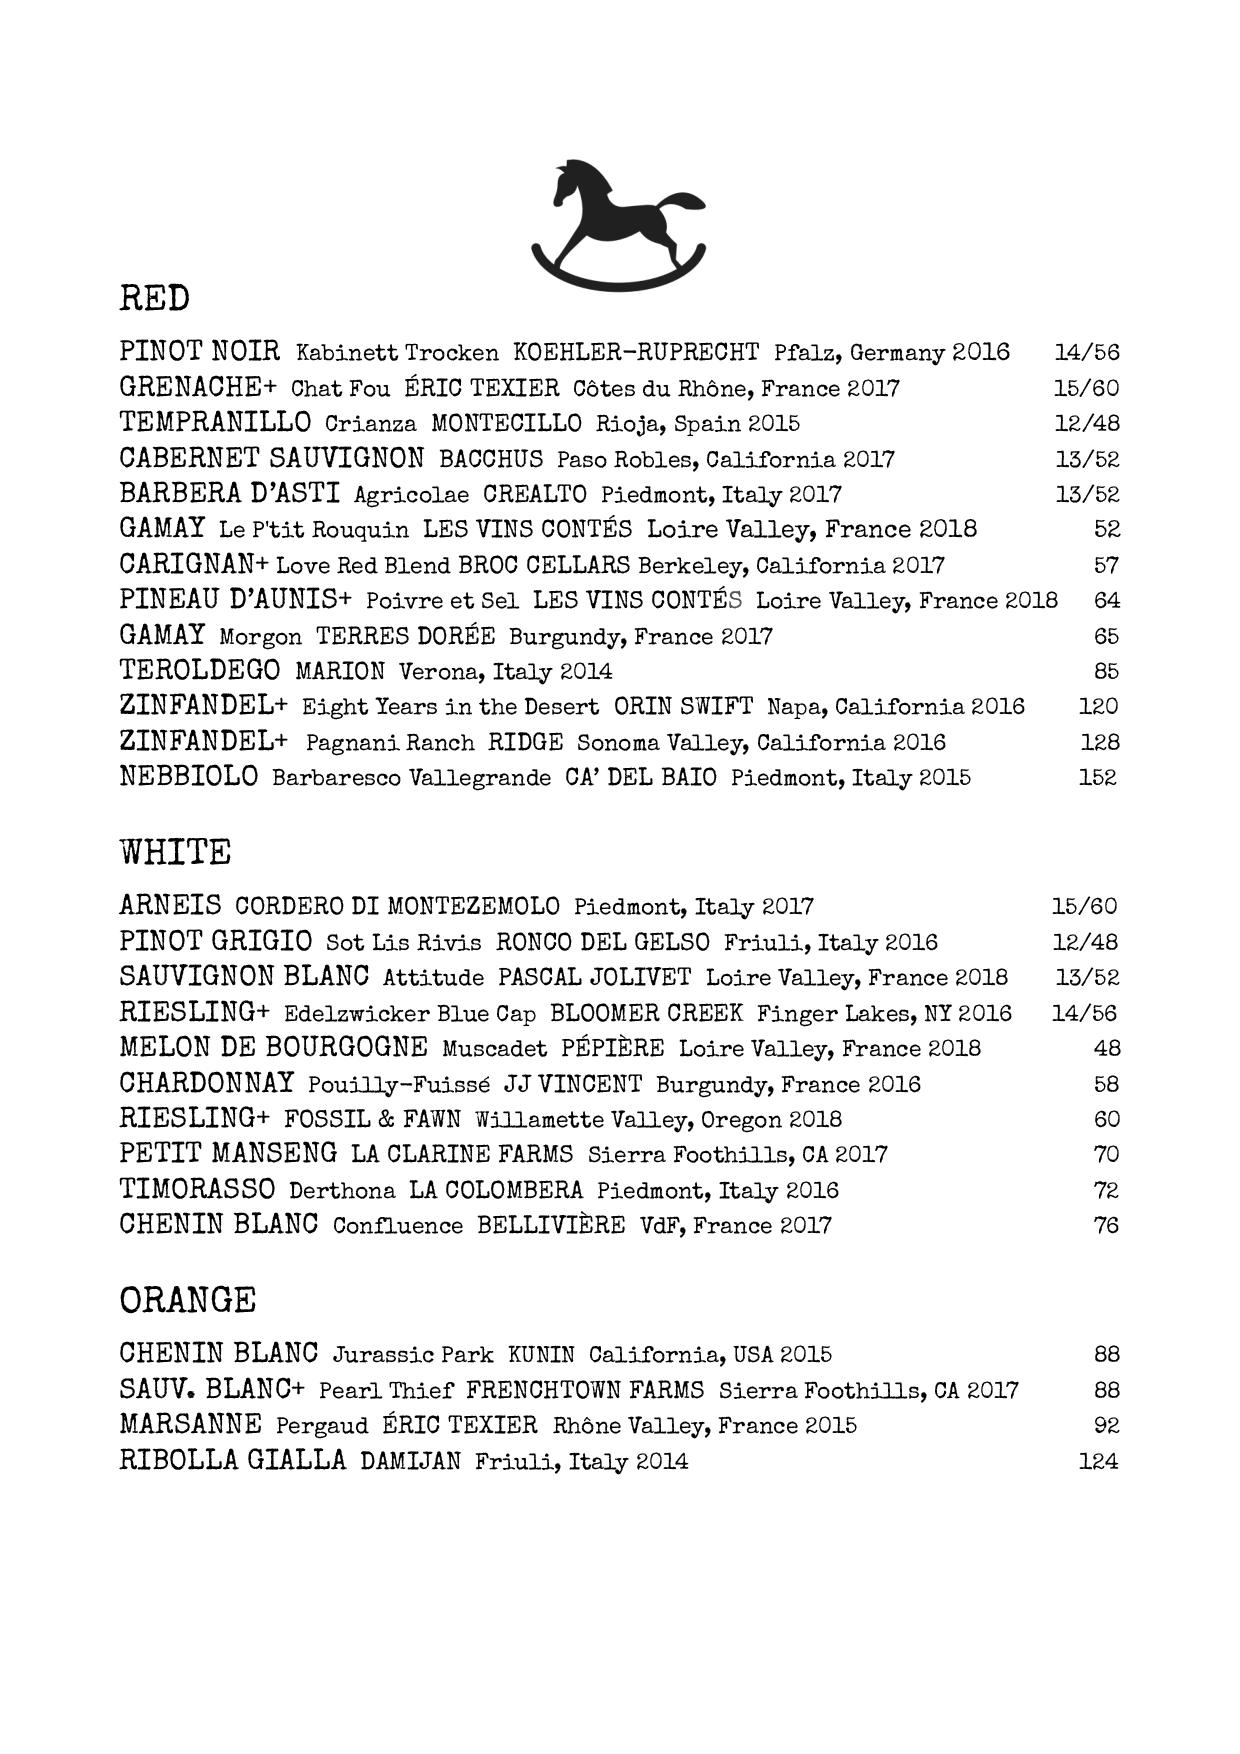 *Wine & sake menu subject to change based on seasonality and availability.